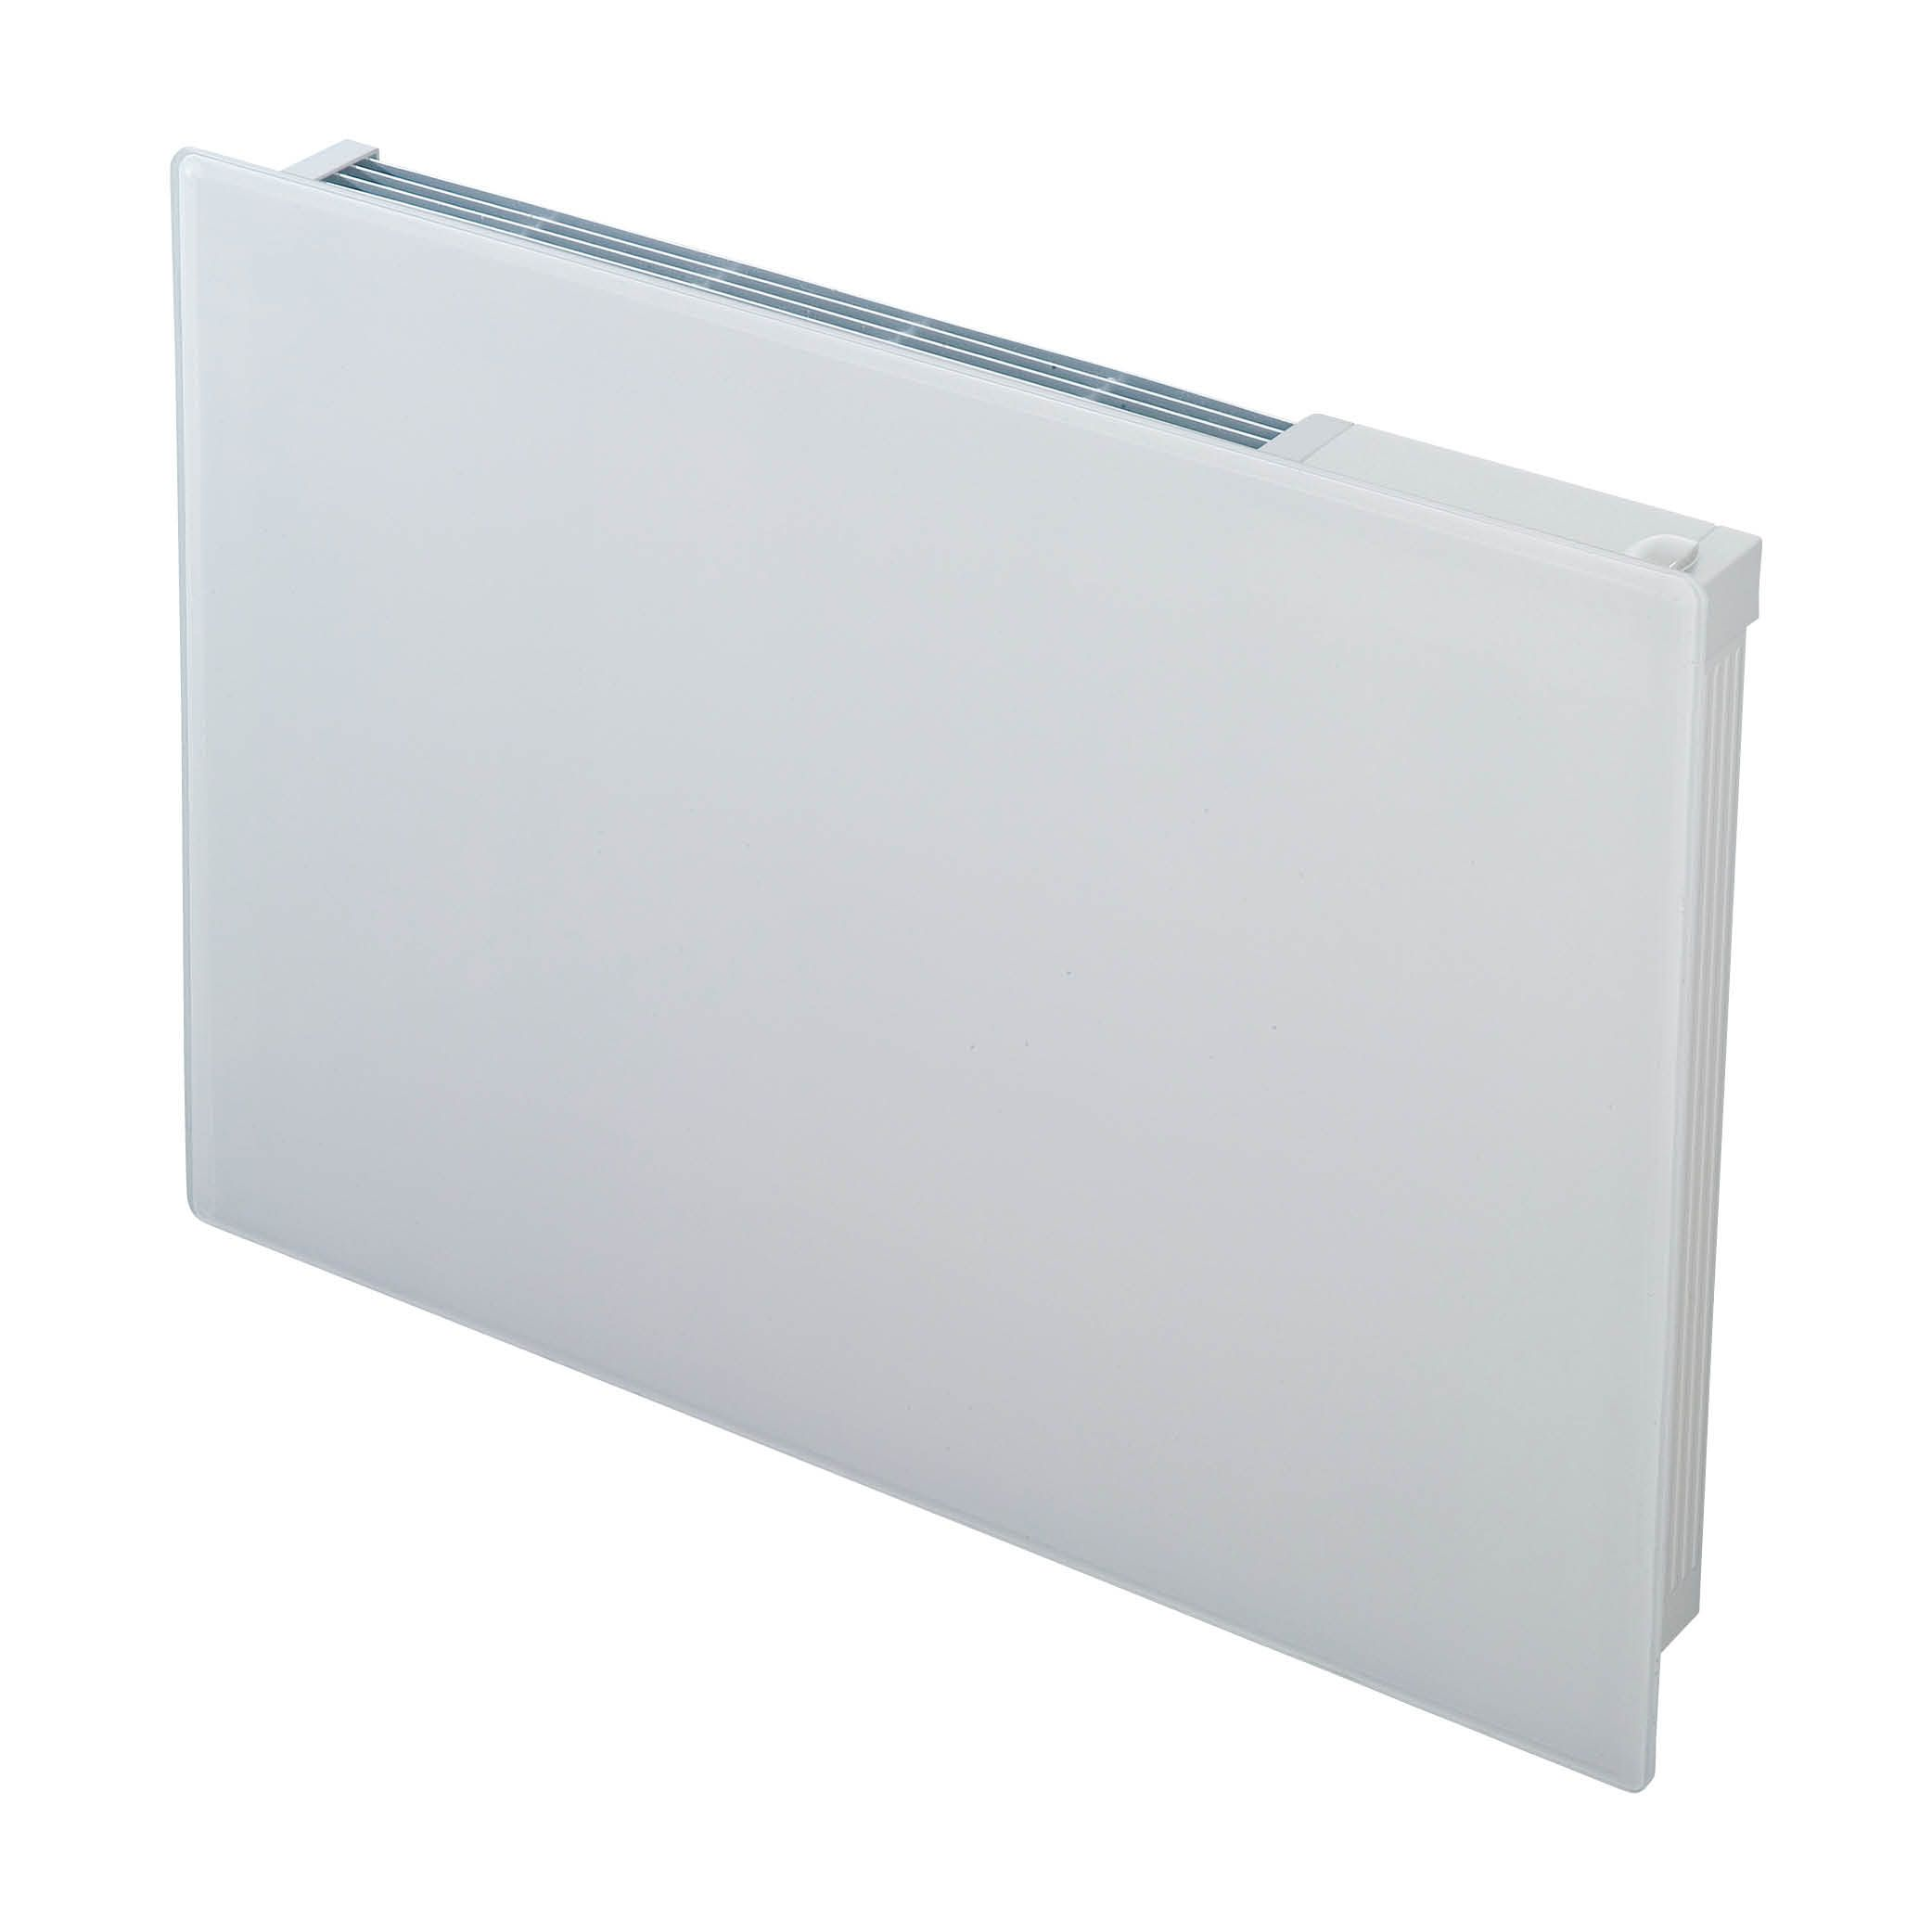 Girona White 2kw Glass Panel Heater Dimplex Glass Panels Cool Things To Buy